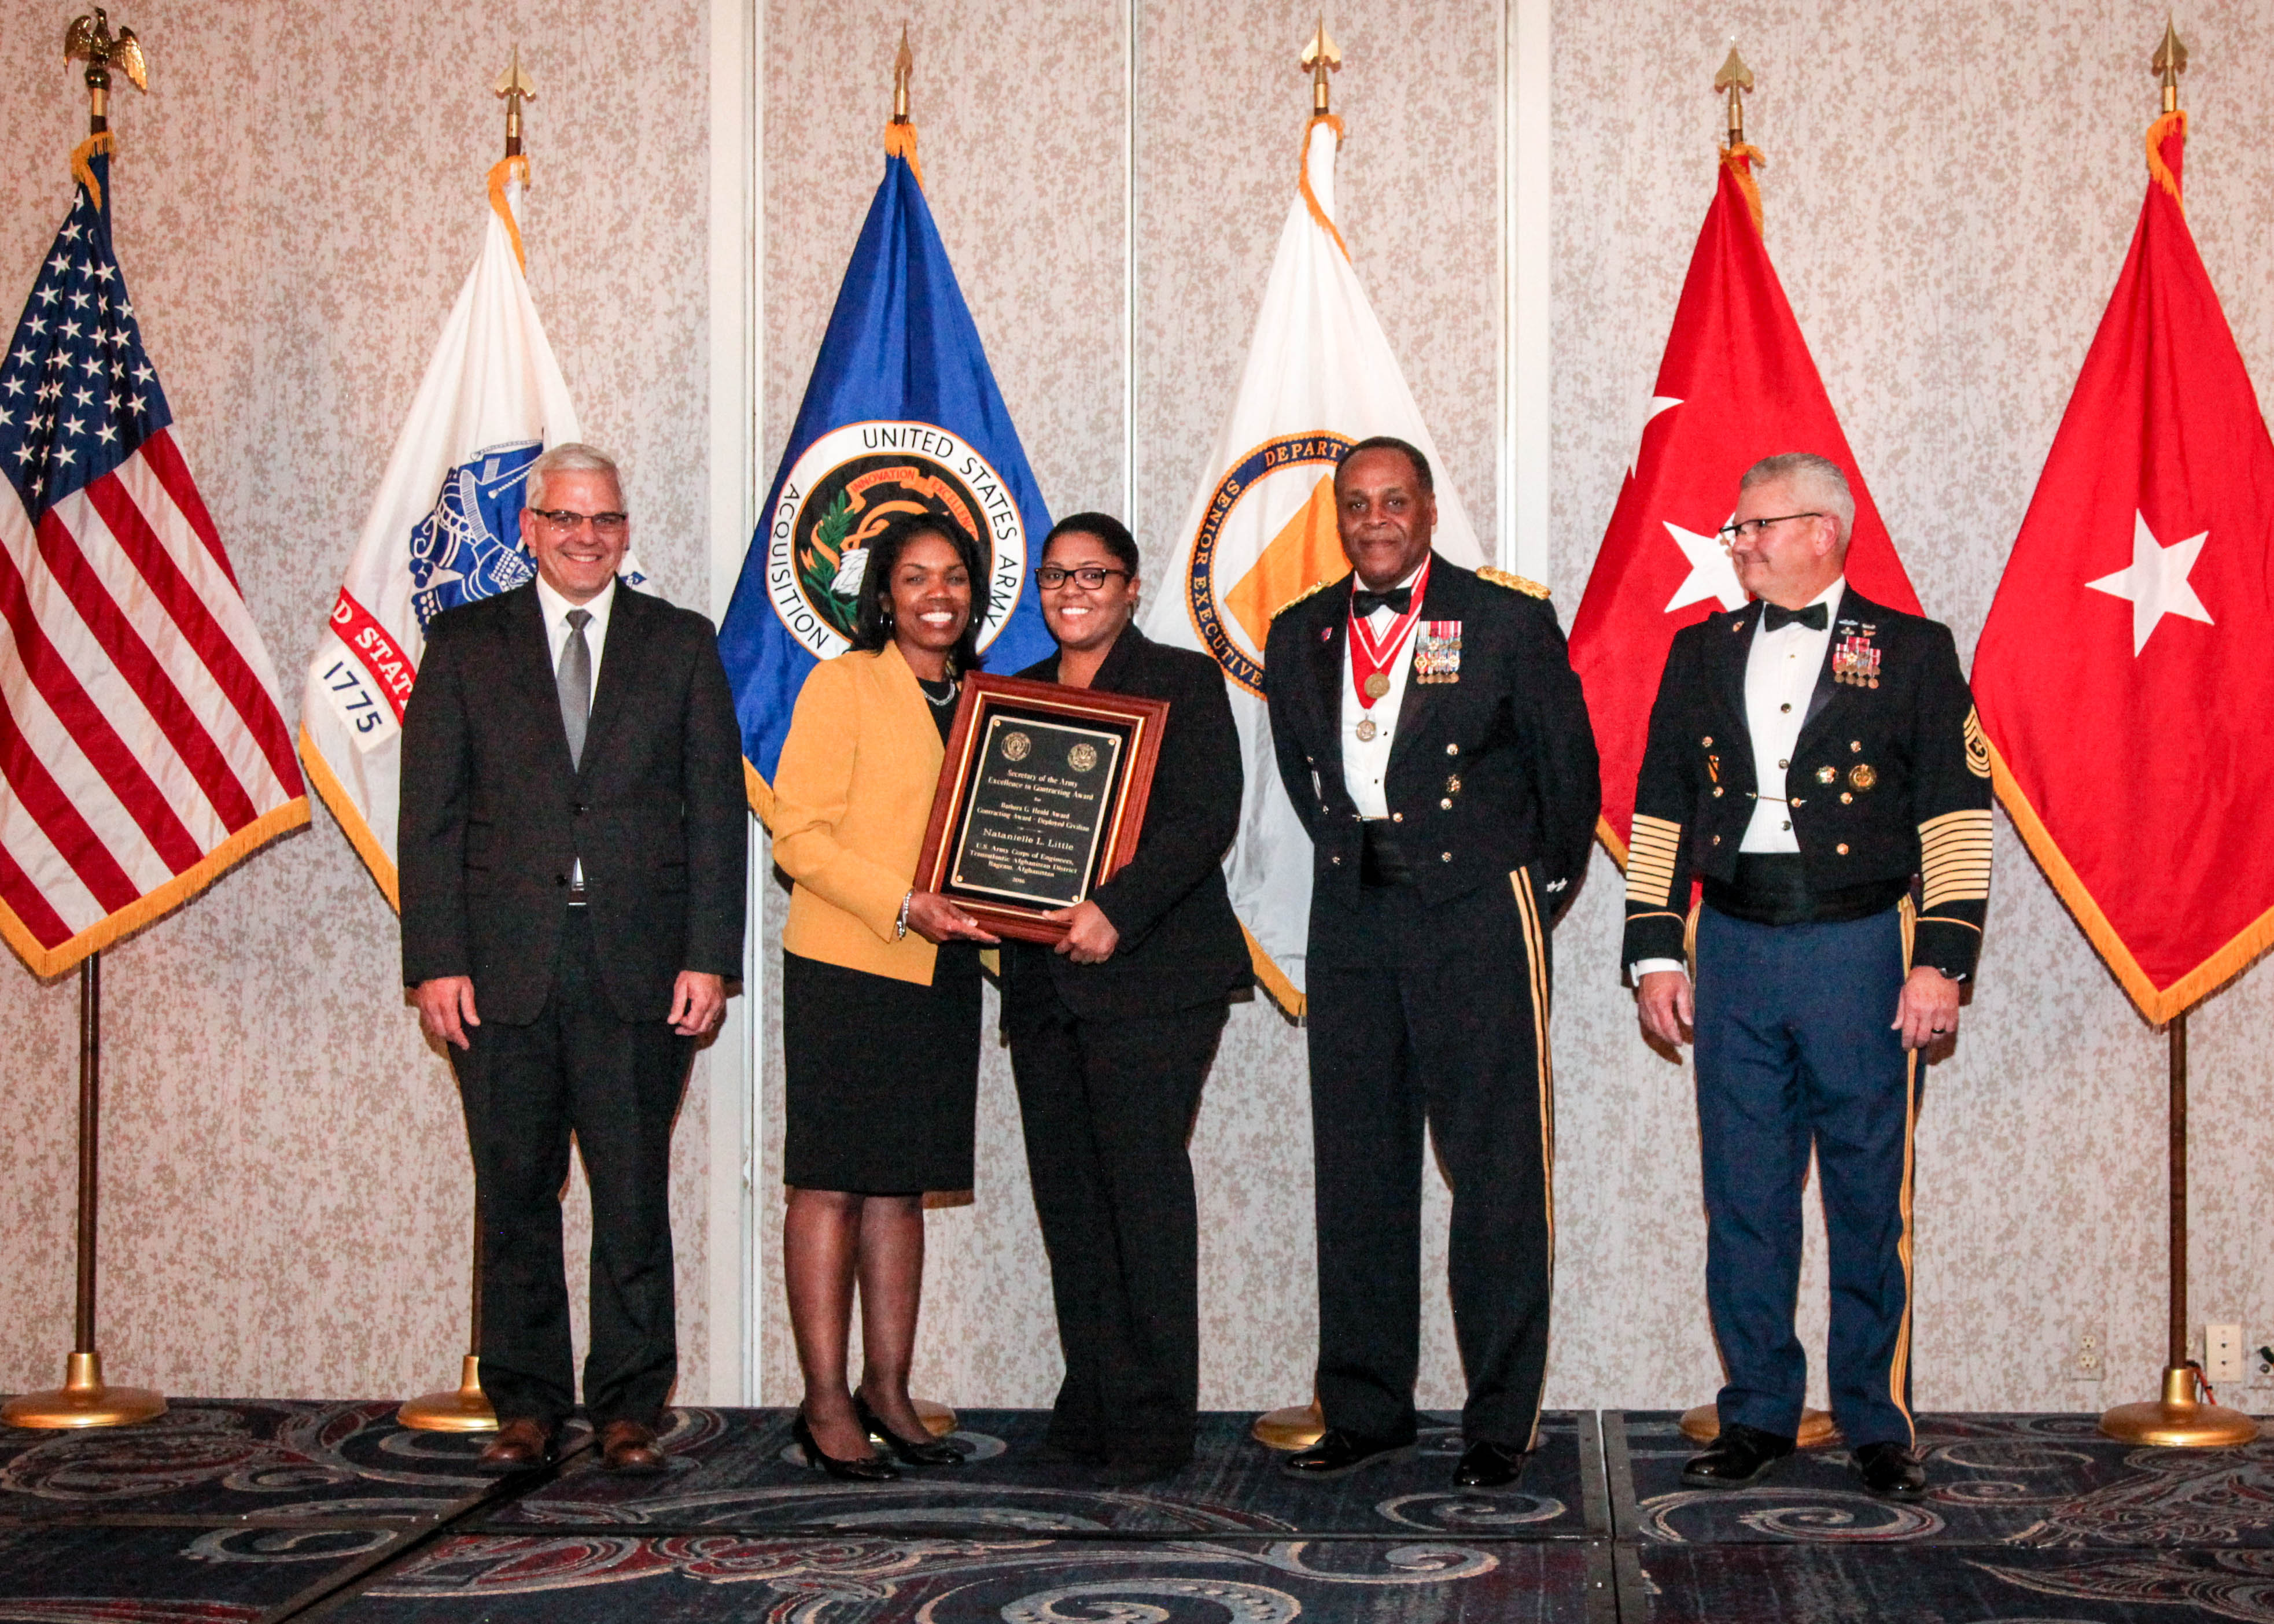 Natanielle L. Little receives the Barbara C. Heald Award during the 2016 Army Acquisition Executive's Excellence in Leadership Awards Ceremony, held Dec. 1, 2016 at Springfield, Virginia. Steffanie Easter, acting assistant secretary of the Army for acquisition, logistics and technology (ASA(ALT)) and the Army acquisition executive, presented the award to Little. Also on hand for the award presentation were, from left, Christopher Lowman, acting principal deputy to the ASA(ALT); Lt. Gen. Michael E. Williamson, principal military deputy to the ASA(ALT) and Director, Acquisition Career Management; and Sgt. Maj. Rory Malloy, sergeant major to the ASA(ALT) principal military deputy.